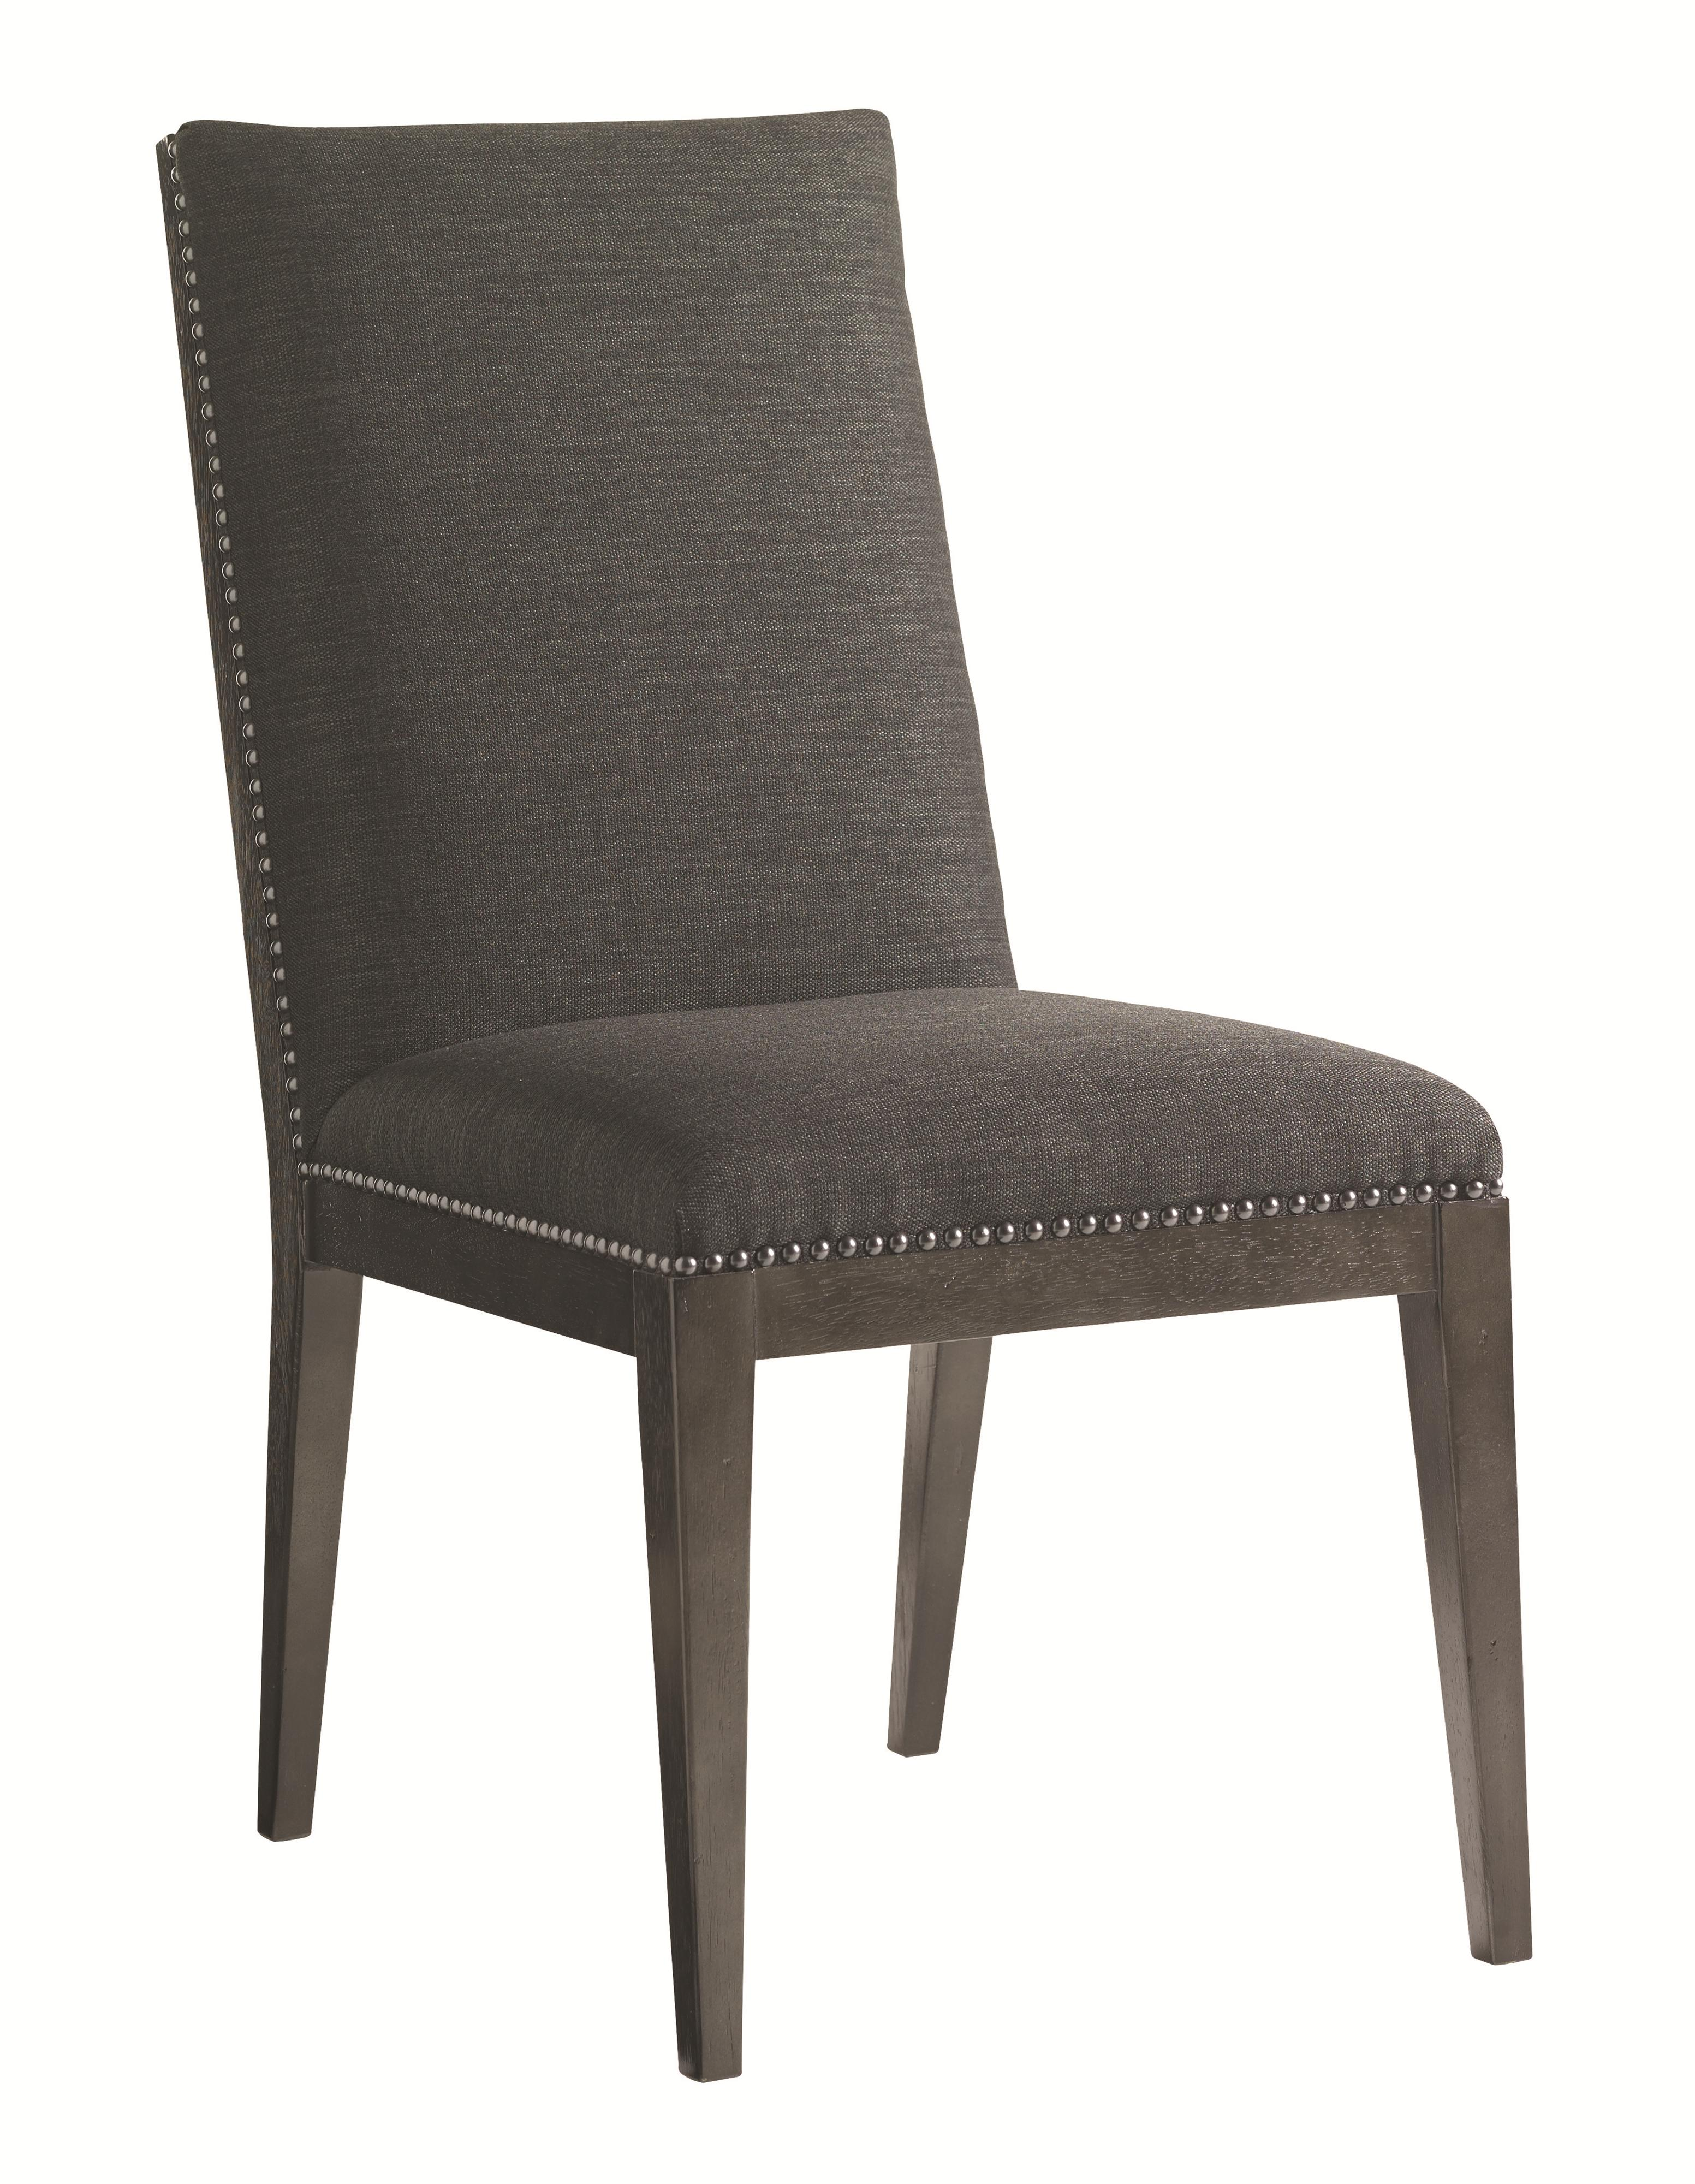 Carrera Vantage Upholstered Side Chair by Lexington at Baer's Furniture